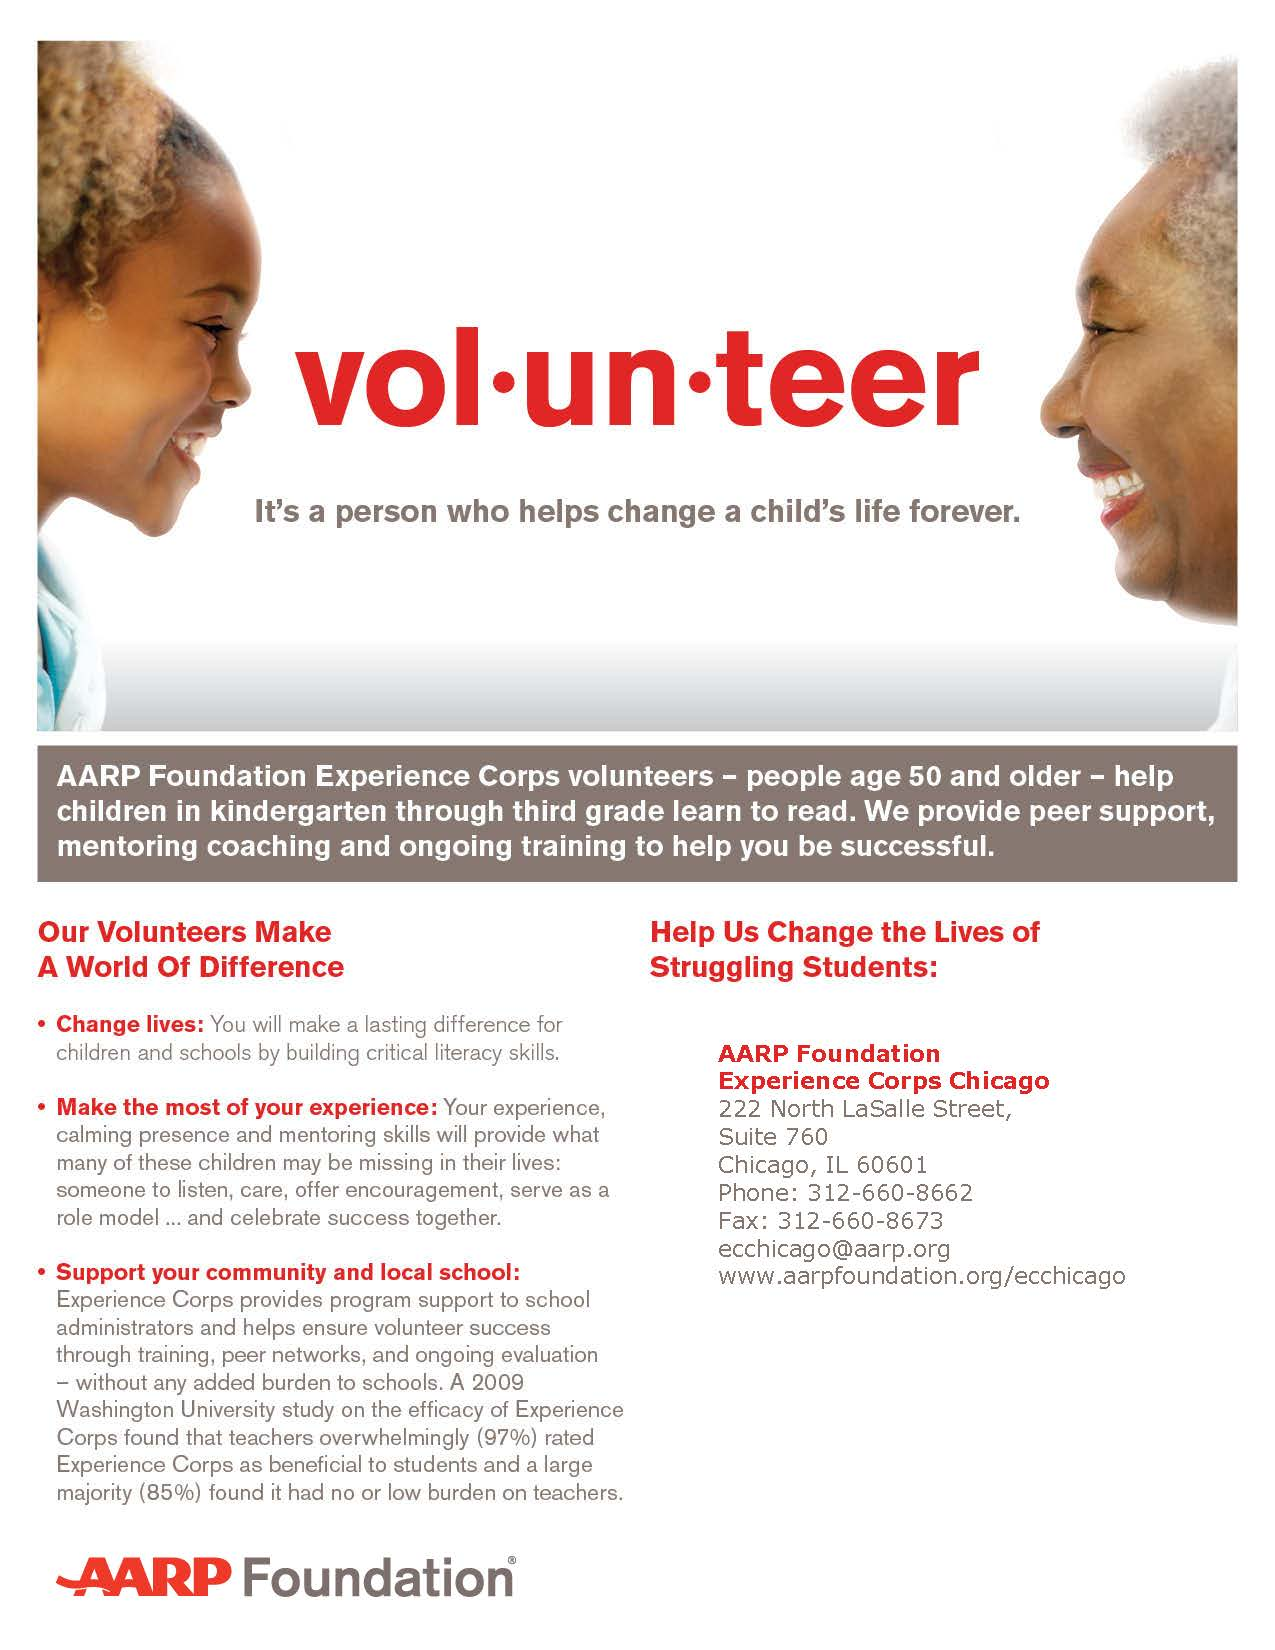 AARP Volunteering